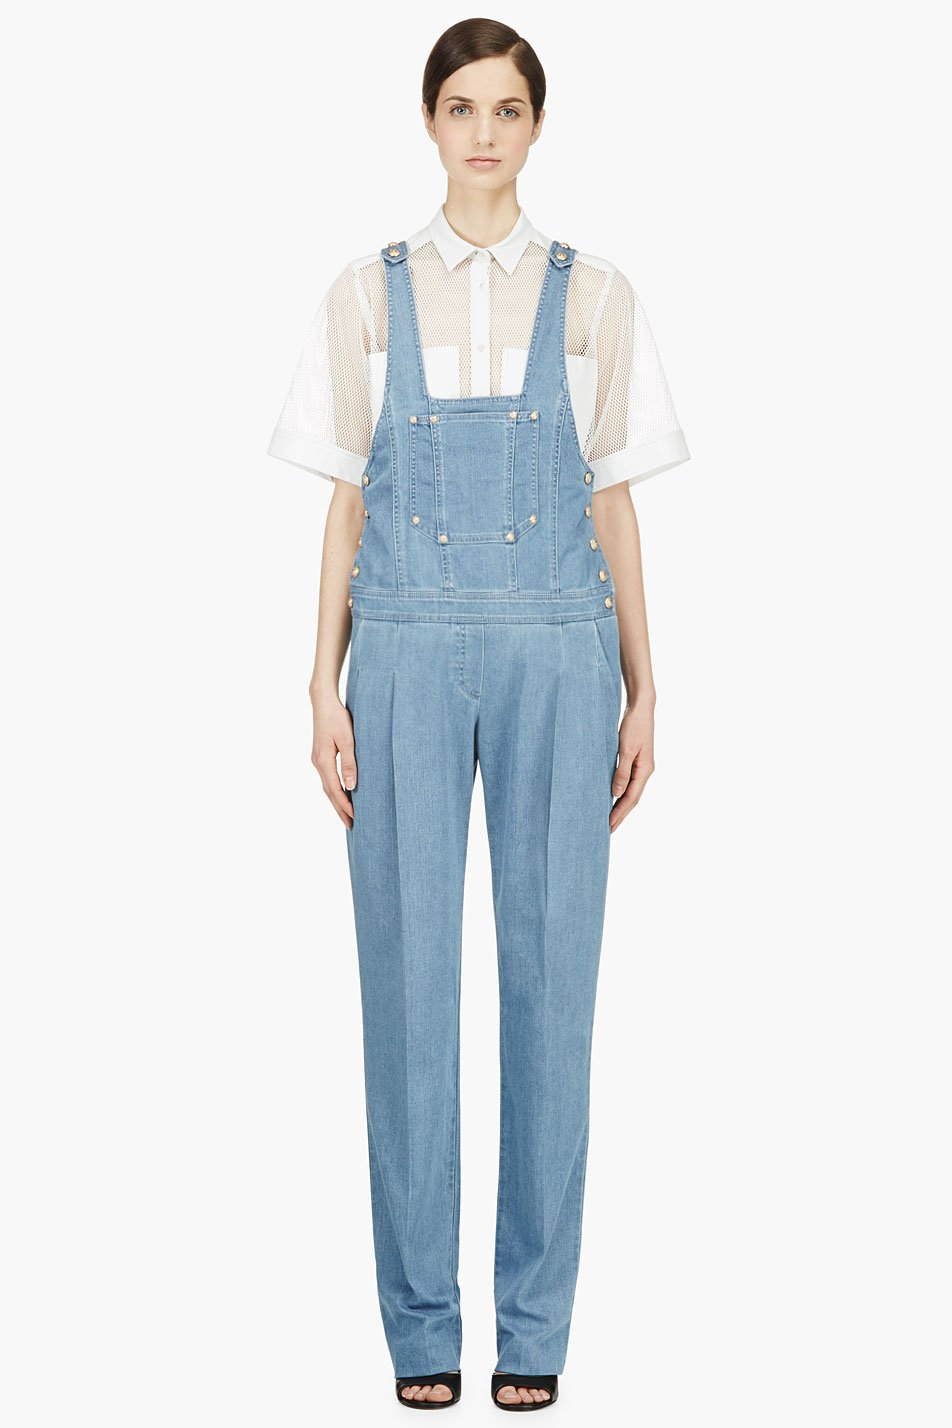 balmain blue and gold buttoned denim overalls